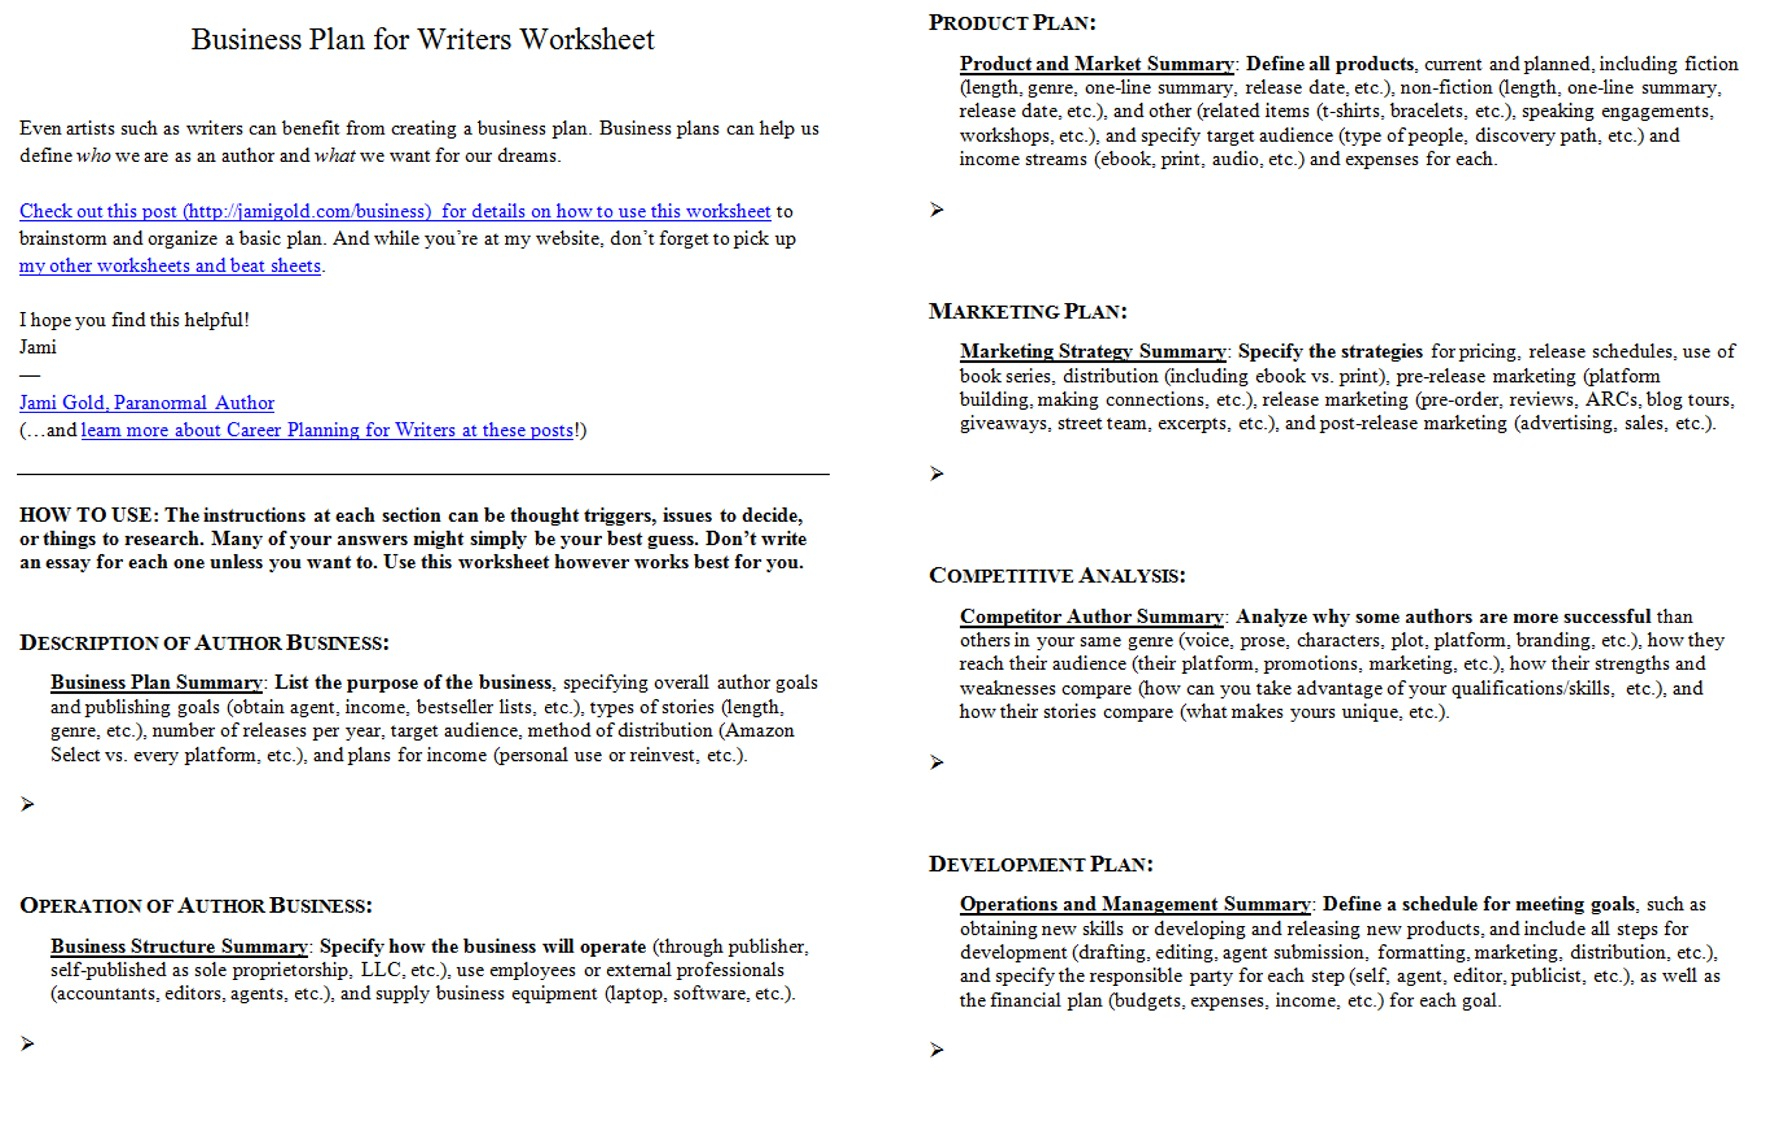 Weirdmailus  Prepossessing Worksheets For Writers  Jami Gold Paranormal Author With Entrancing Screen Shot Of Both Pages Of The Business Plan For Writers Worksheet With Breathtaking  Step Inequalities Worksheet Also Ratio Word Problems Worksheet Th Grade In Addition Make A Line Plot Worksheet And Polynomial Long Division Worksheets As Well As Transverse Wave Worksheet Additionally Number  Worksheets For Preschool From Jamigoldcom With Weirdmailus  Entrancing Worksheets For Writers  Jami Gold Paranormal Author With Breathtaking Screen Shot Of Both Pages Of The Business Plan For Writers Worksheet And Prepossessing  Step Inequalities Worksheet Also Ratio Word Problems Worksheet Th Grade In Addition Make A Line Plot Worksheet From Jamigoldcom